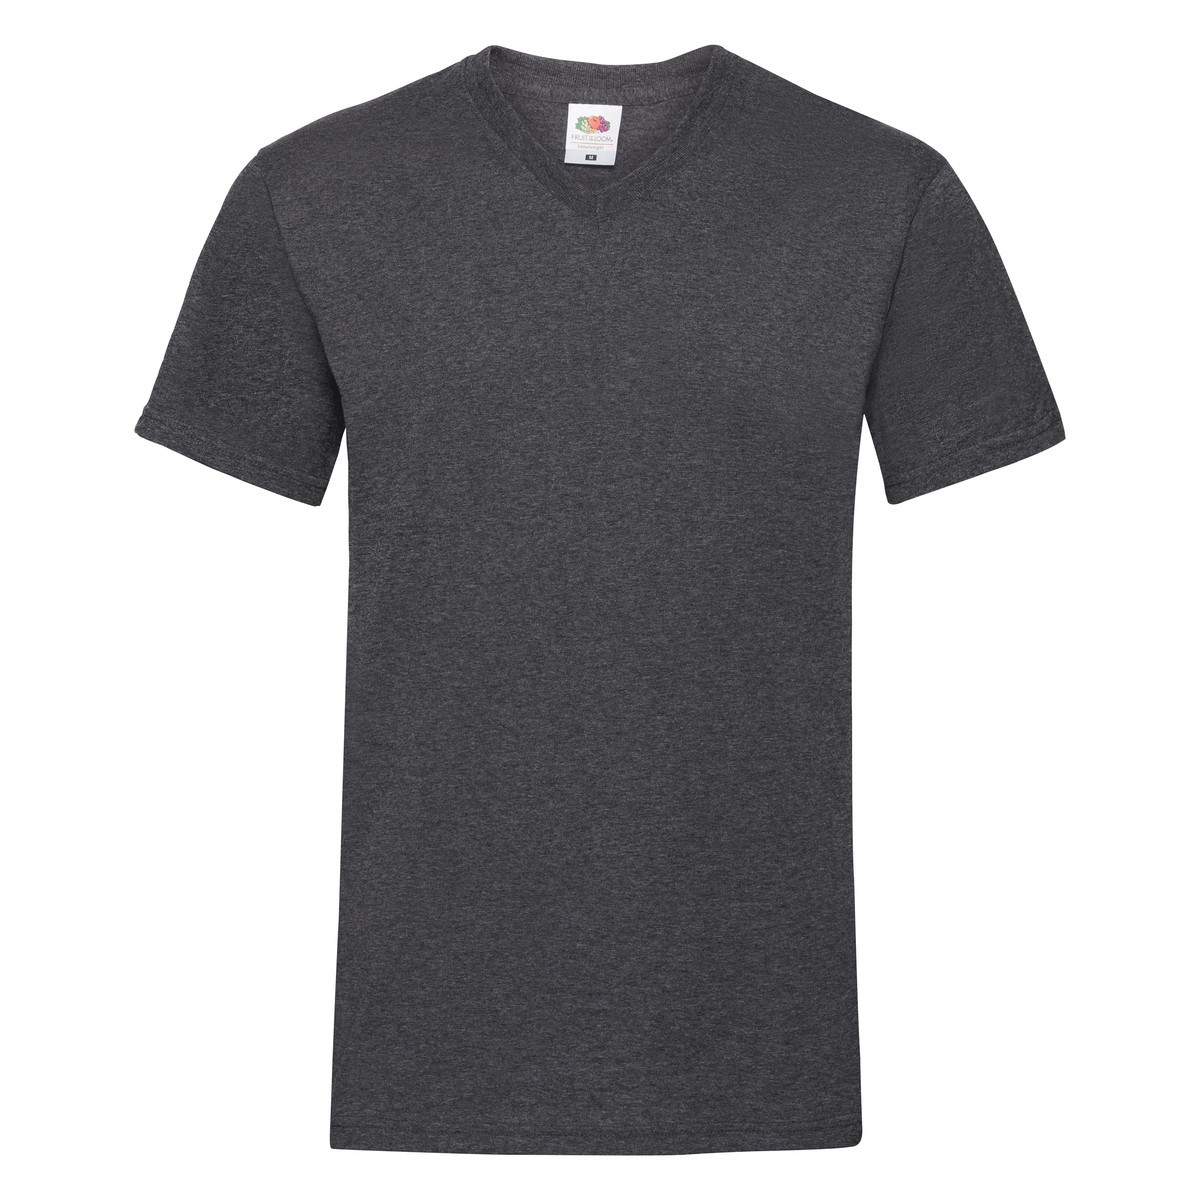 DARK HEATHER GREY - FR610660